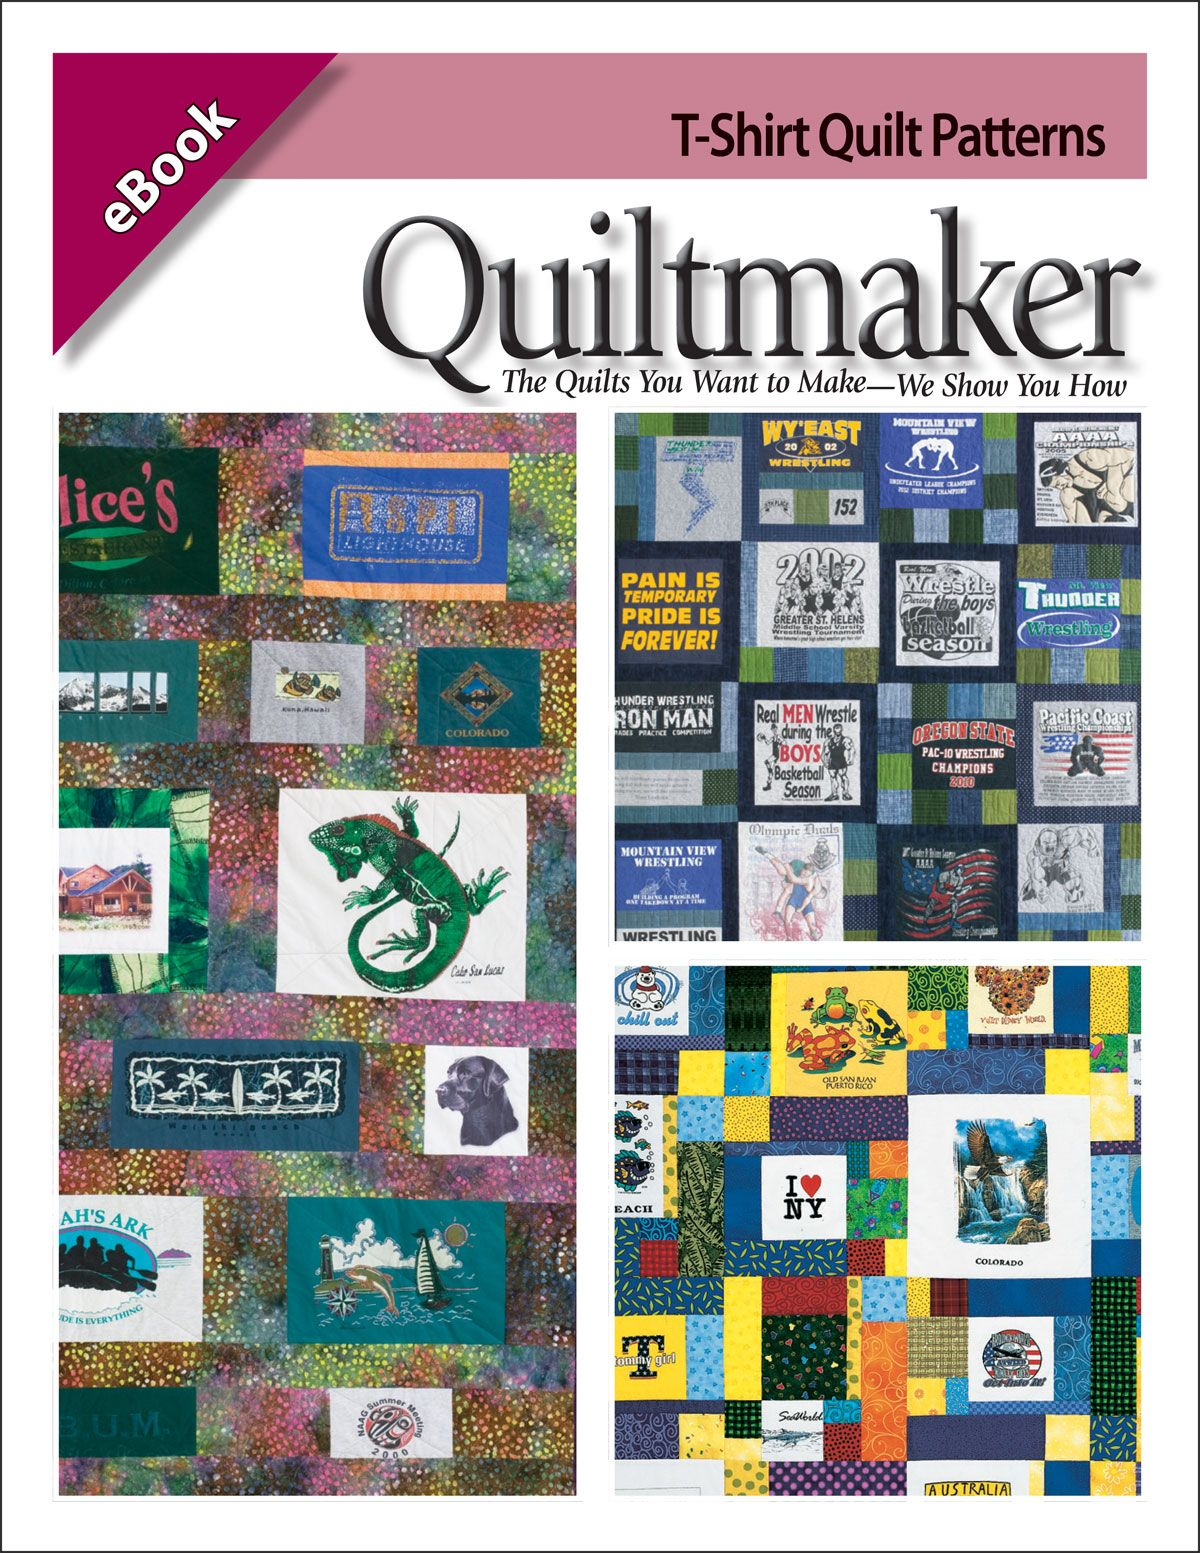 This Free Ebook From Quiltmaker Includes Three Helpful Articles And